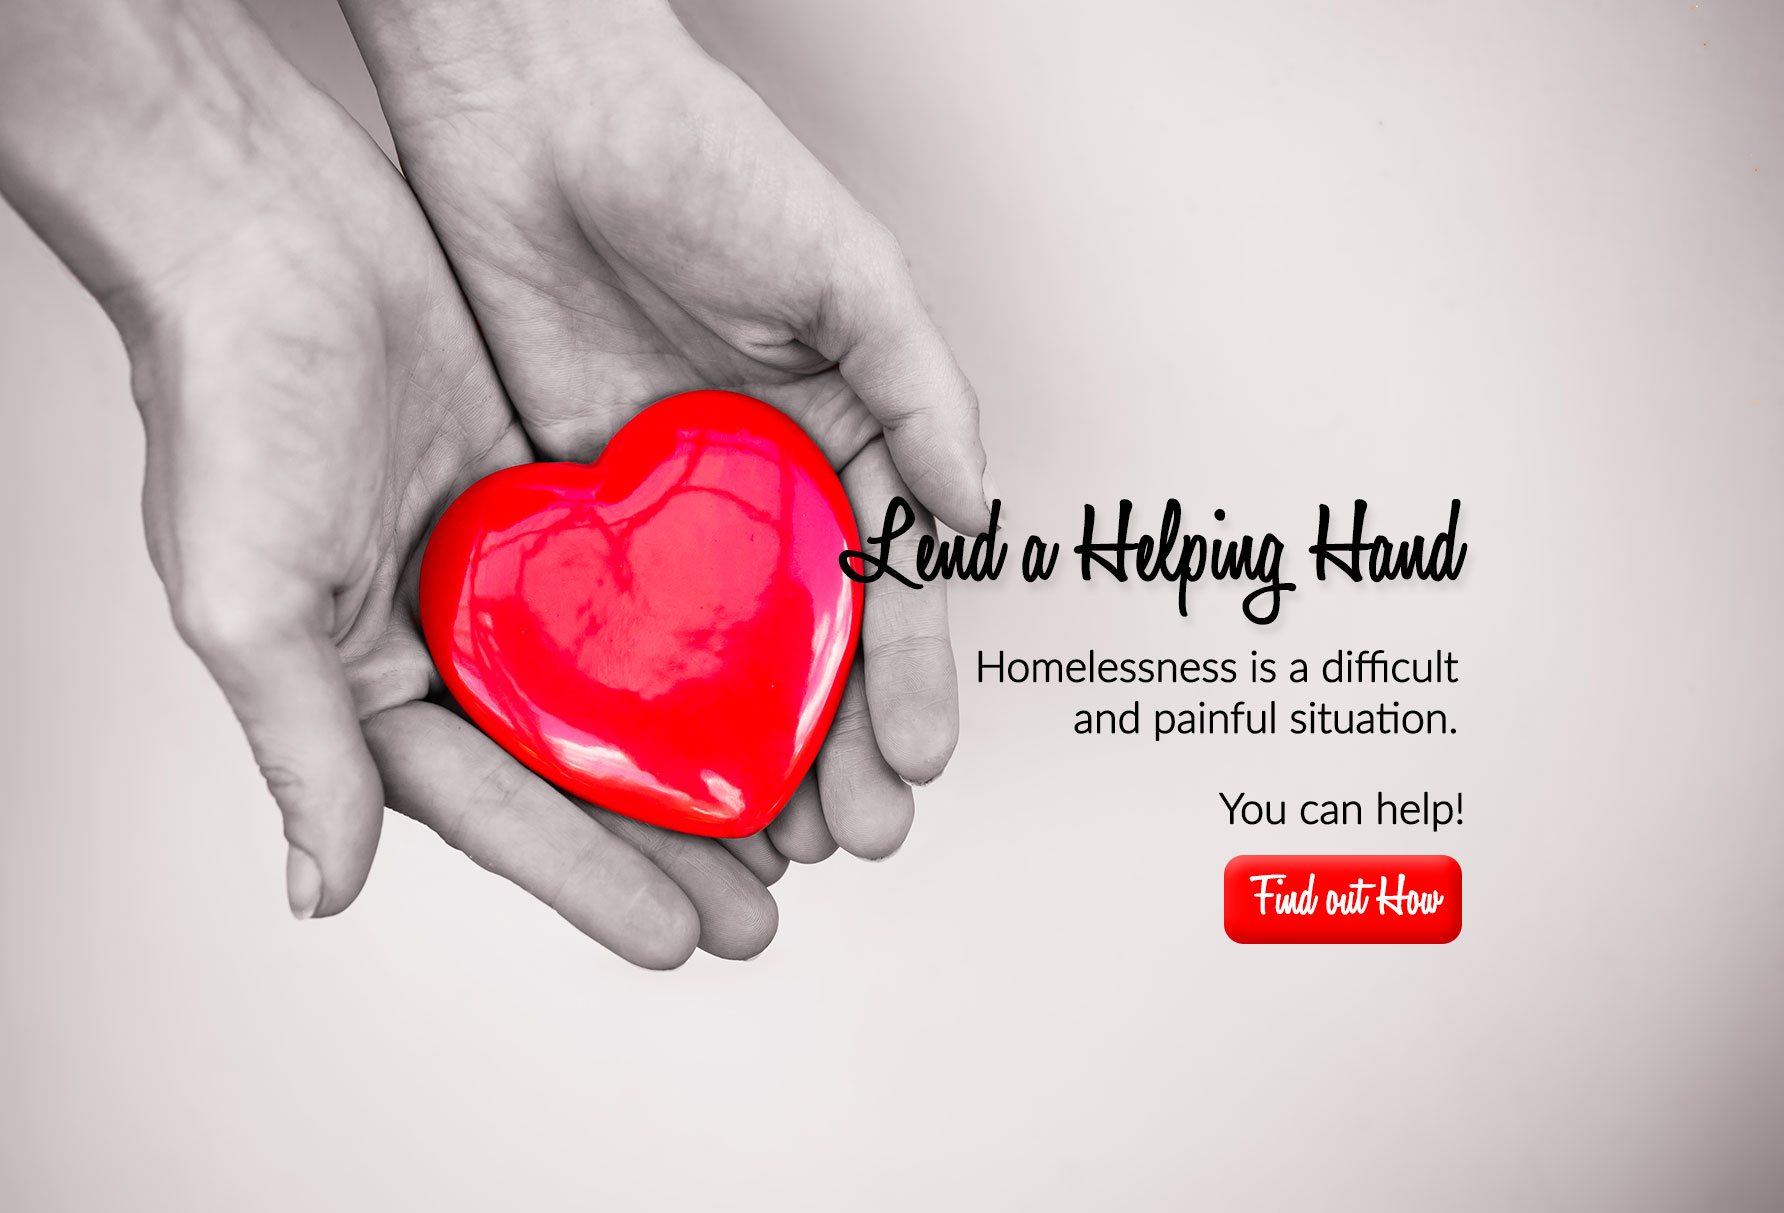 Lend a Helping Hand - Find out How